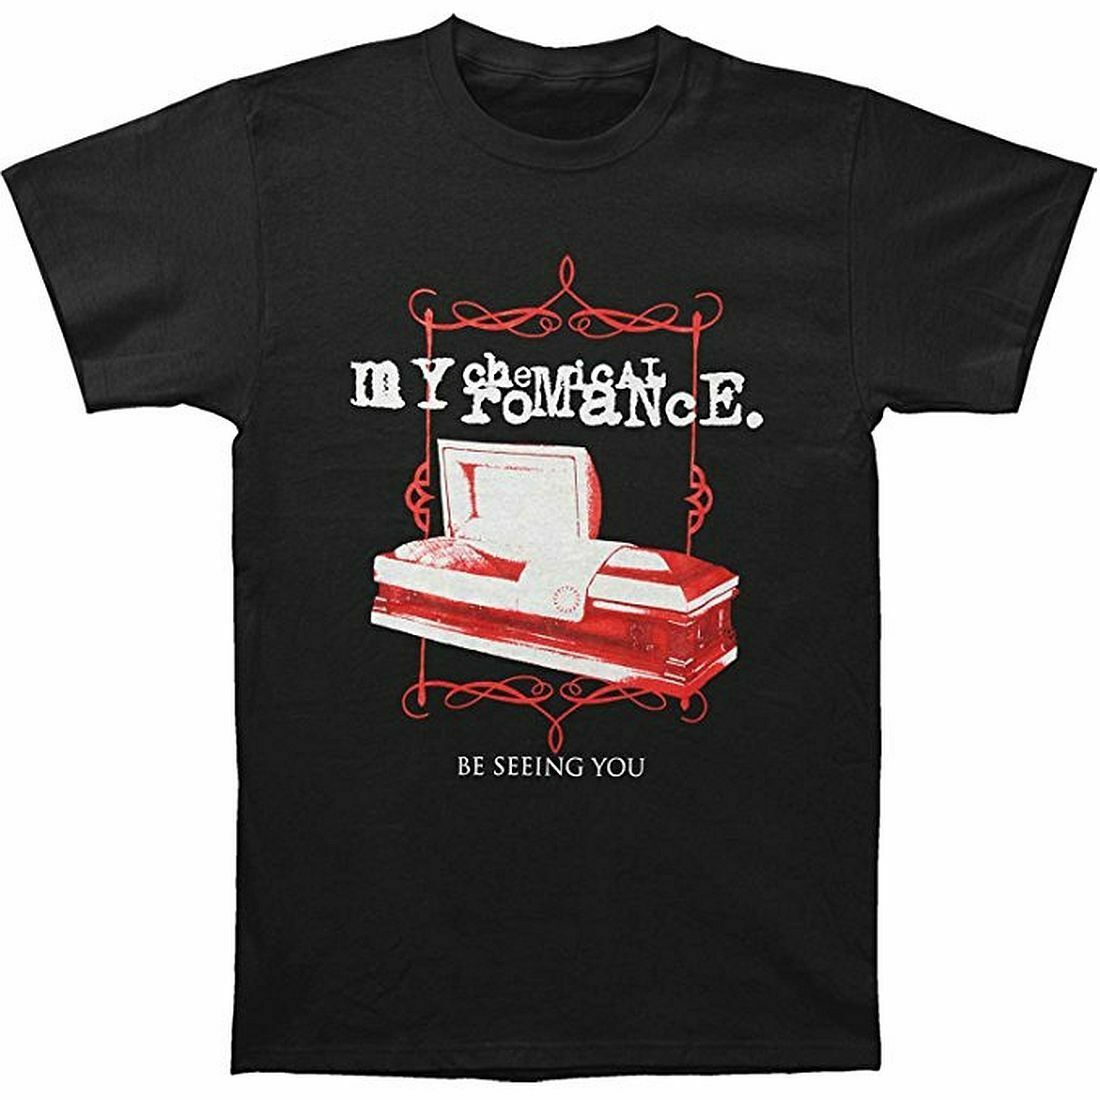 My Chemical Romance Coffin T-Shirt All Sizes New New Brand-Clothing T Shirts Top Tee